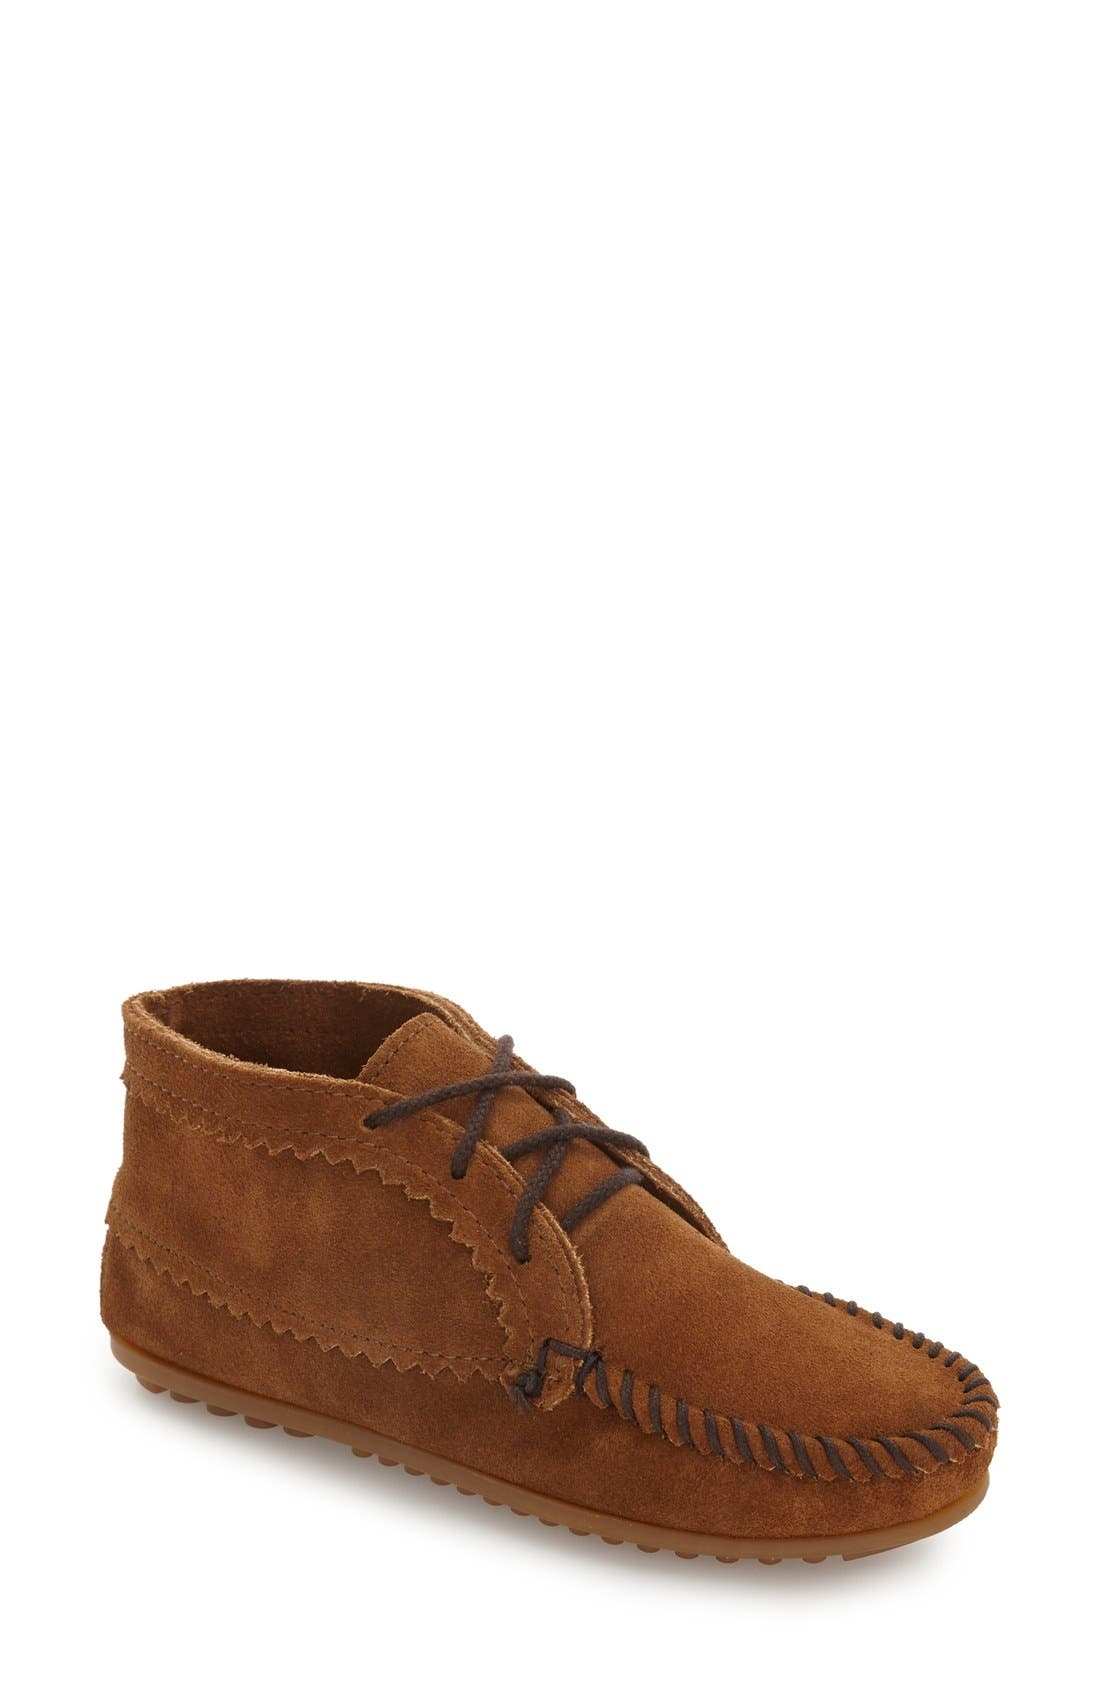 Main Image - Minnetonka Chukka Moccasin Boot (Women)